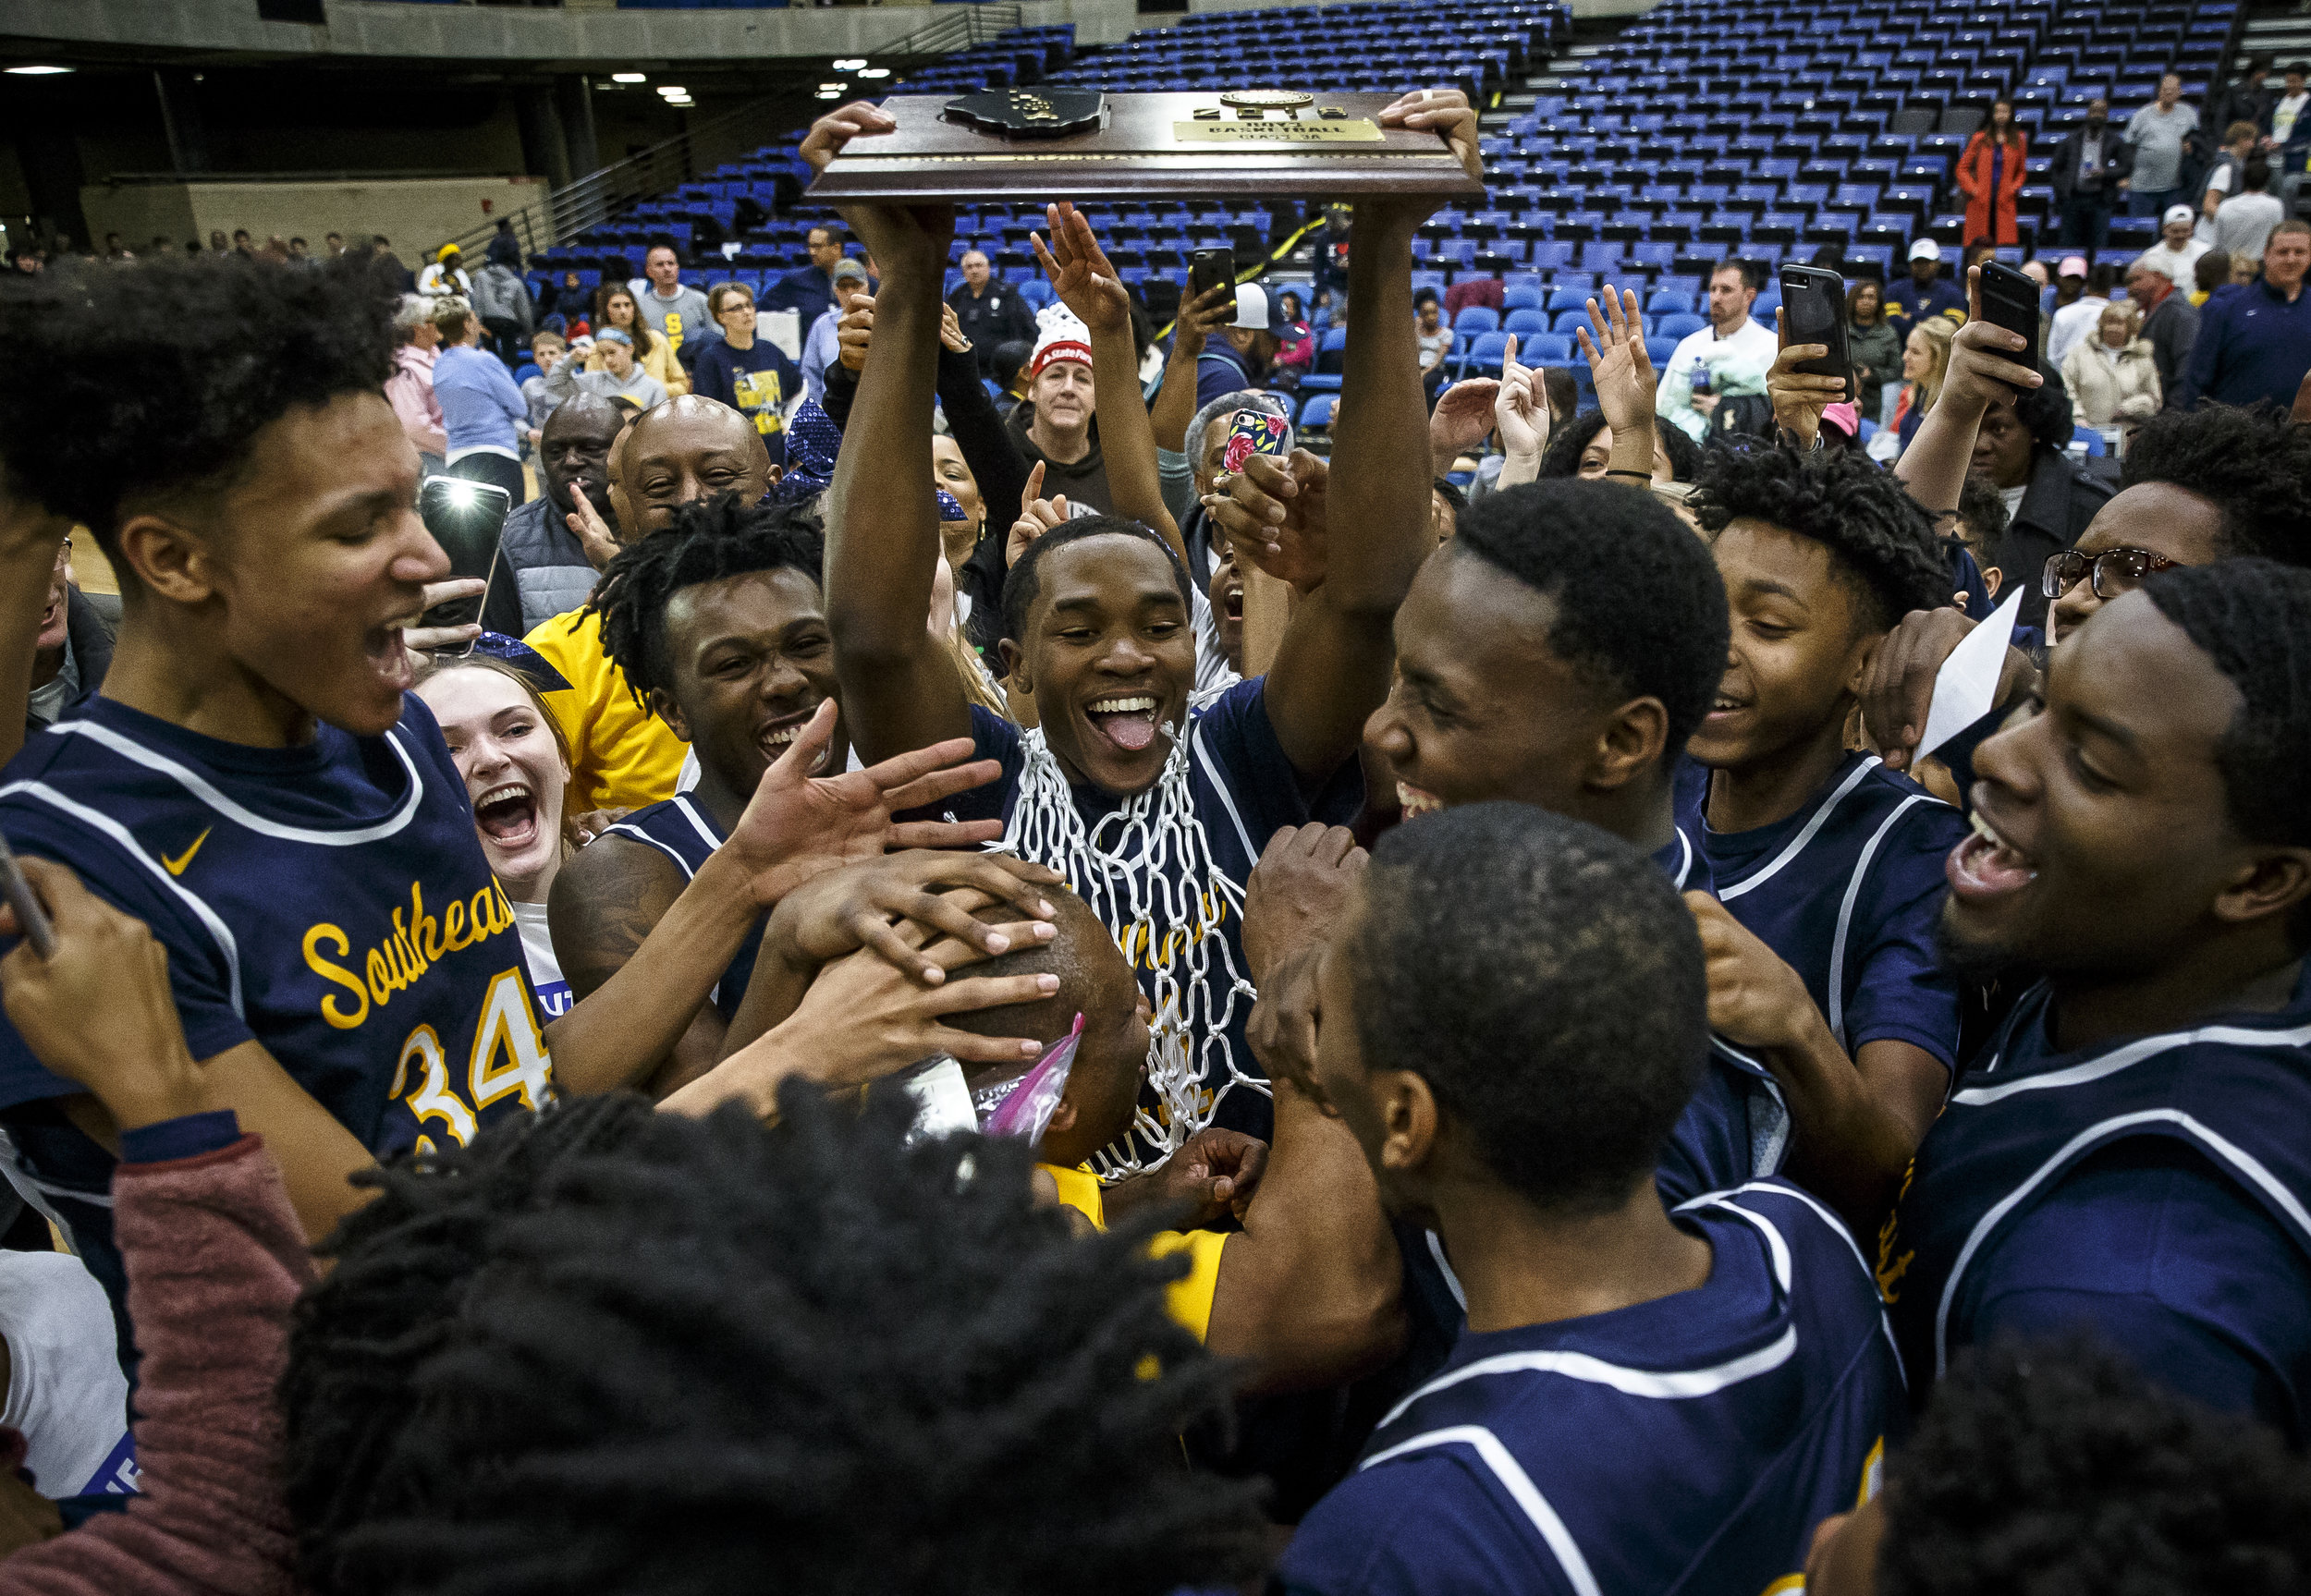 Southeast's Kobe Medley (11) and the Spartans surround Southeast boys basketball head coach Lawrence Thomas  as they celebrate their 56-51 victory over Marion in the Class 3A Springfield Supersectional at the Bank of Springfield Center, Tuesday, March 13, 2018, in Springfield, Ill. [Justin L. Fowler/The State Journal-Register]